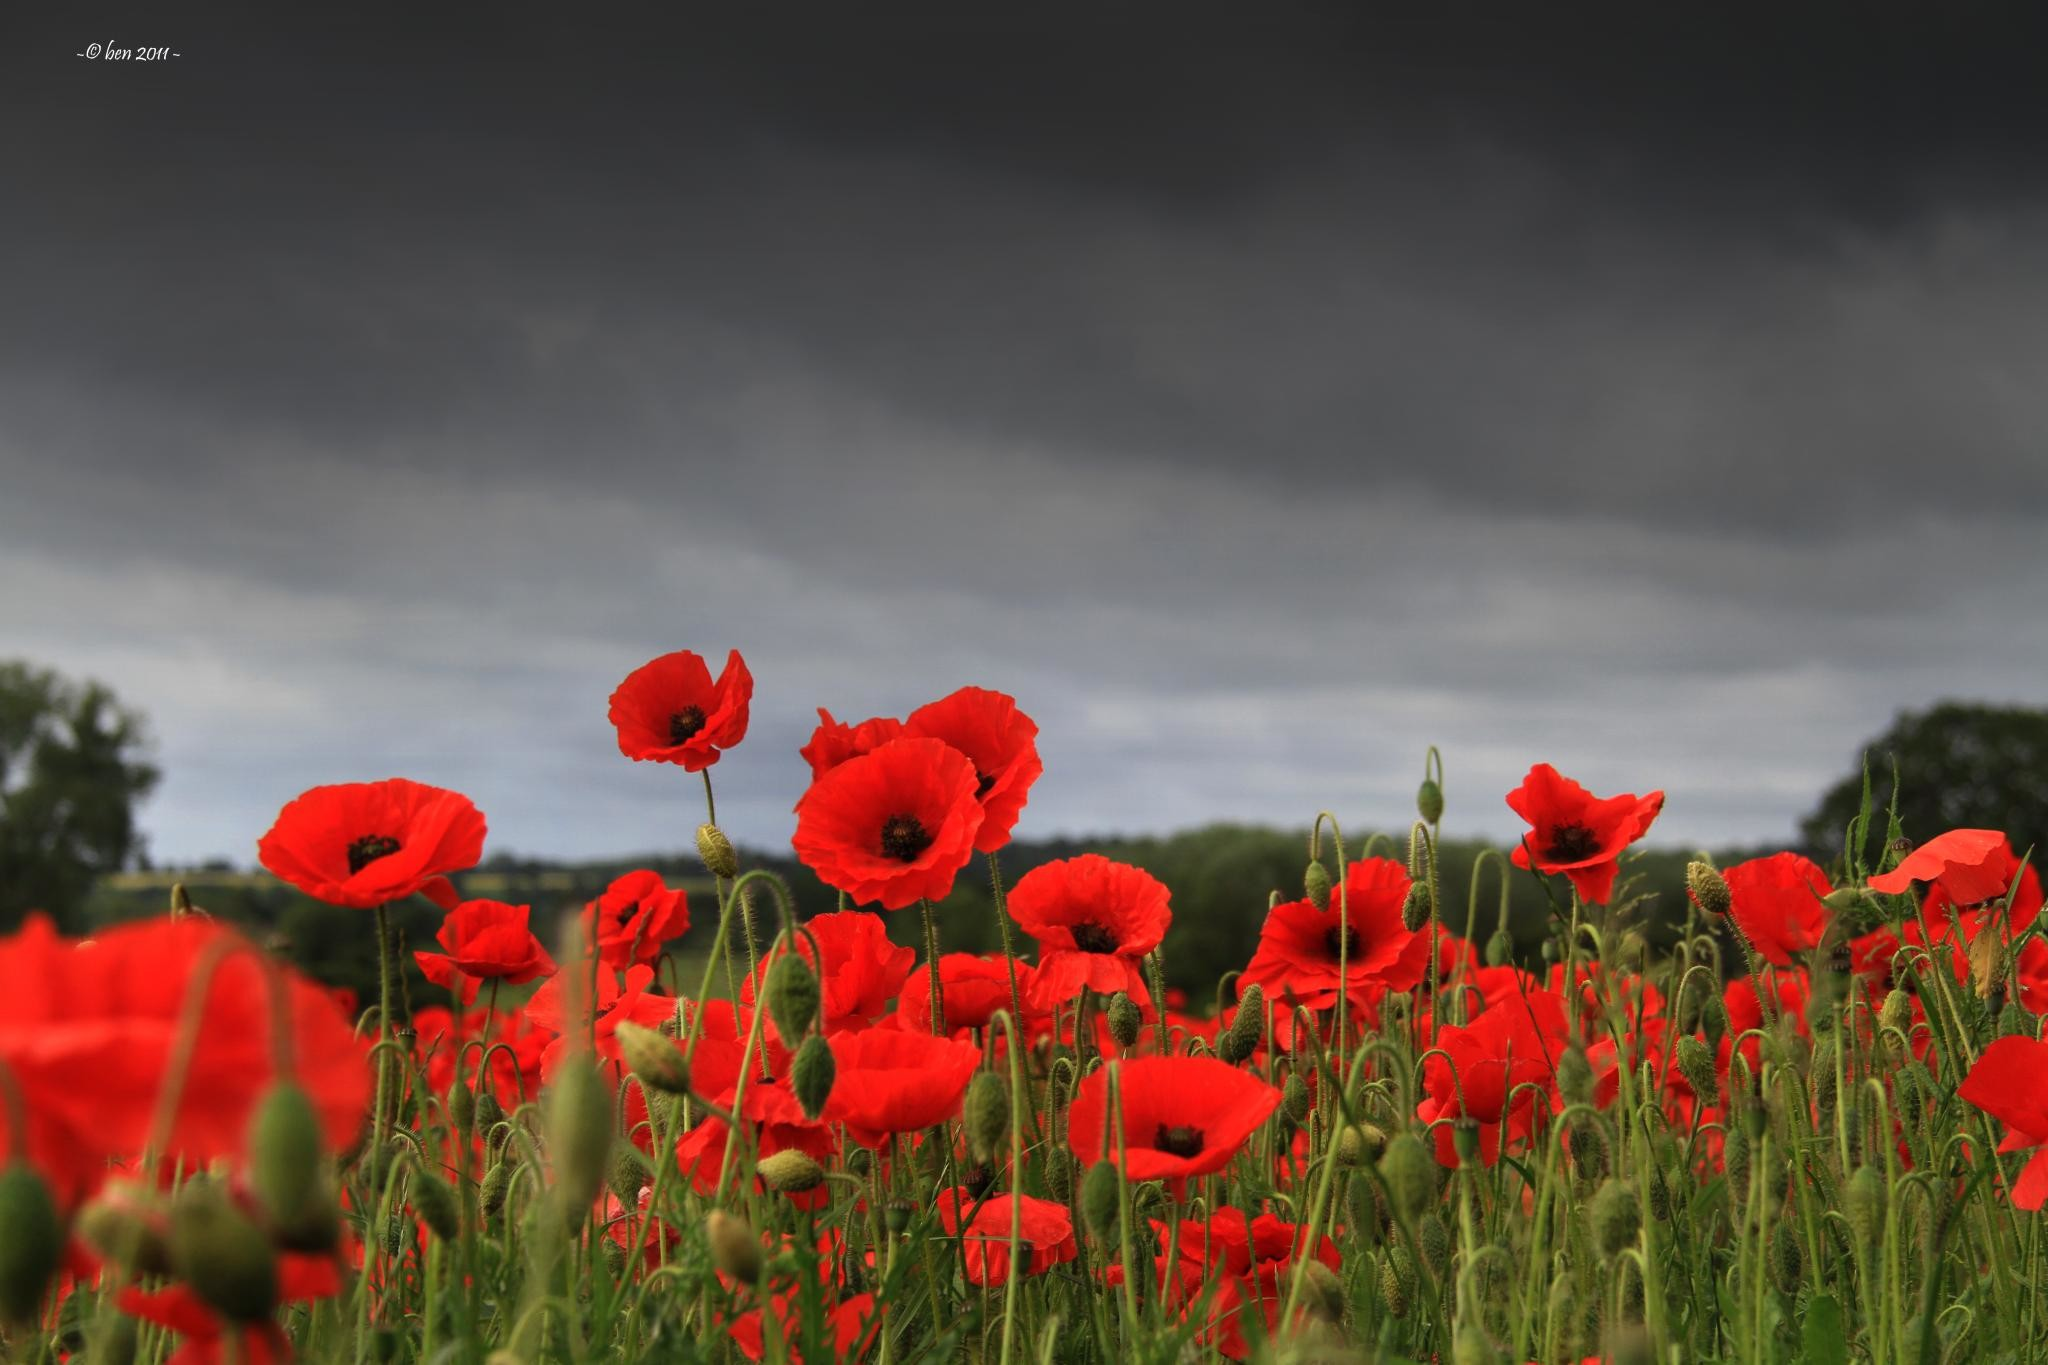 field of poppies wallpaper 50 images. Black Bedroom Furniture Sets. Home Design Ideas